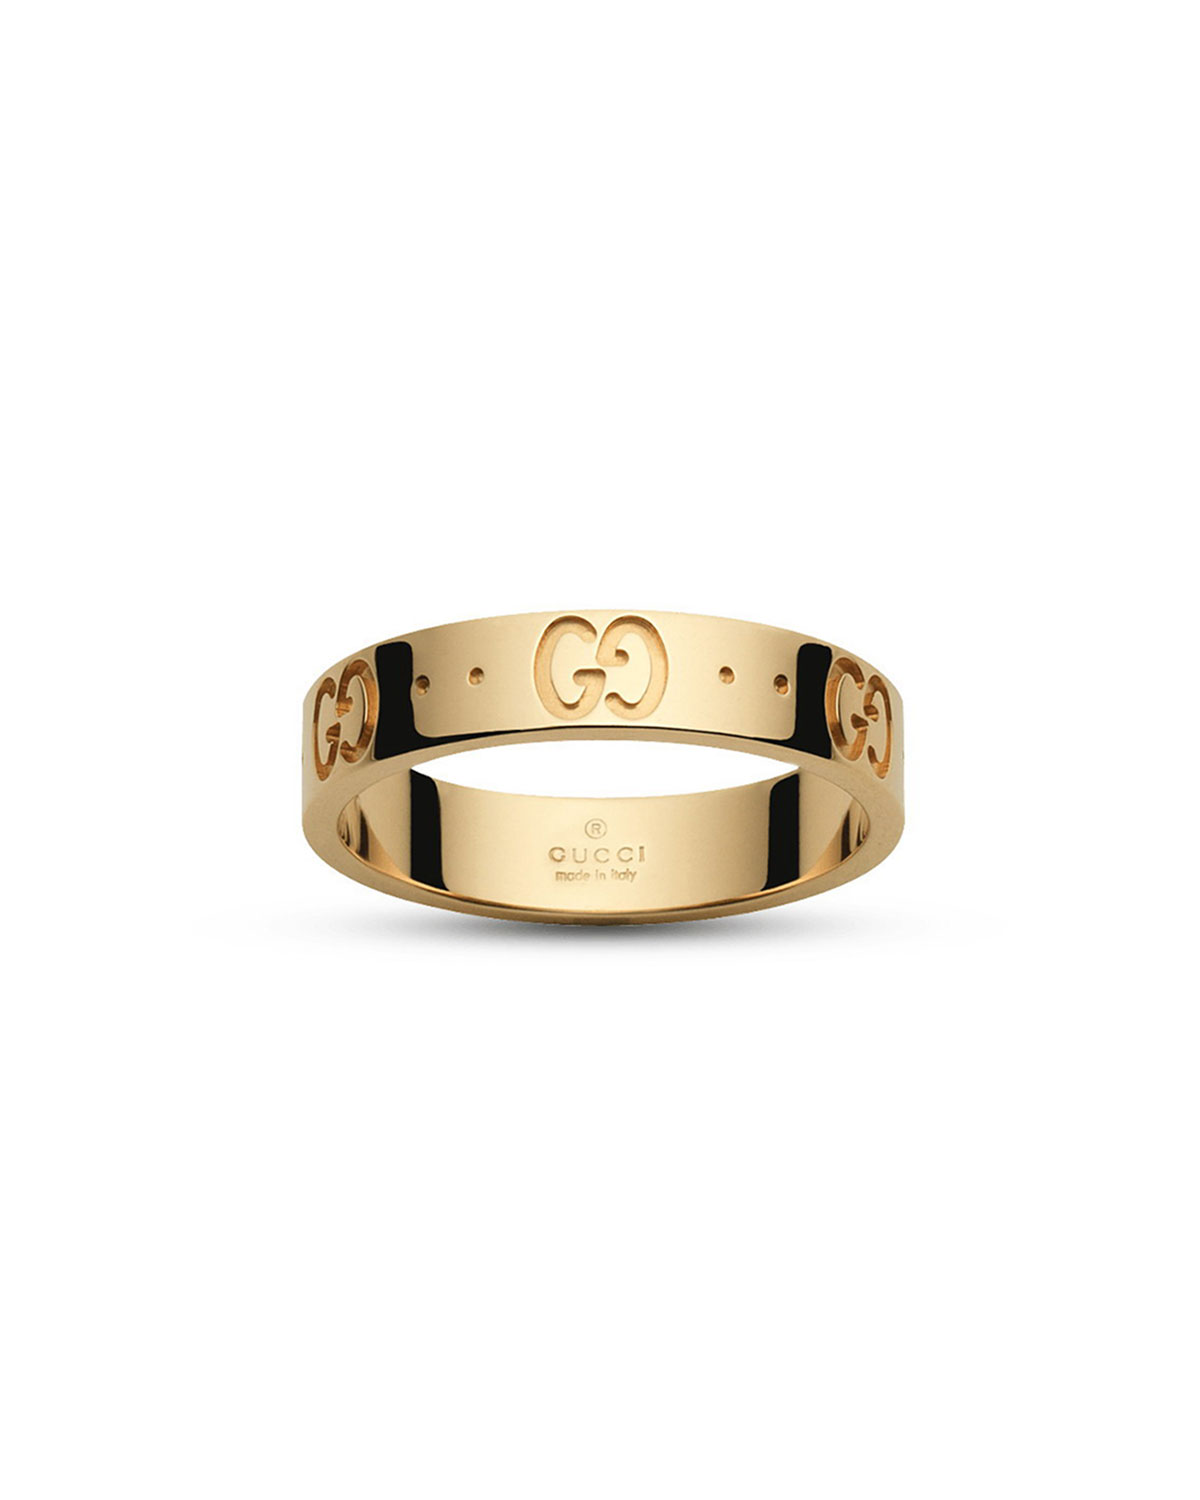 e22883a497ab6f Gucci Icon GG Thin Band Ring in 18K Gold, Size 7.25 | Neiman Marcus